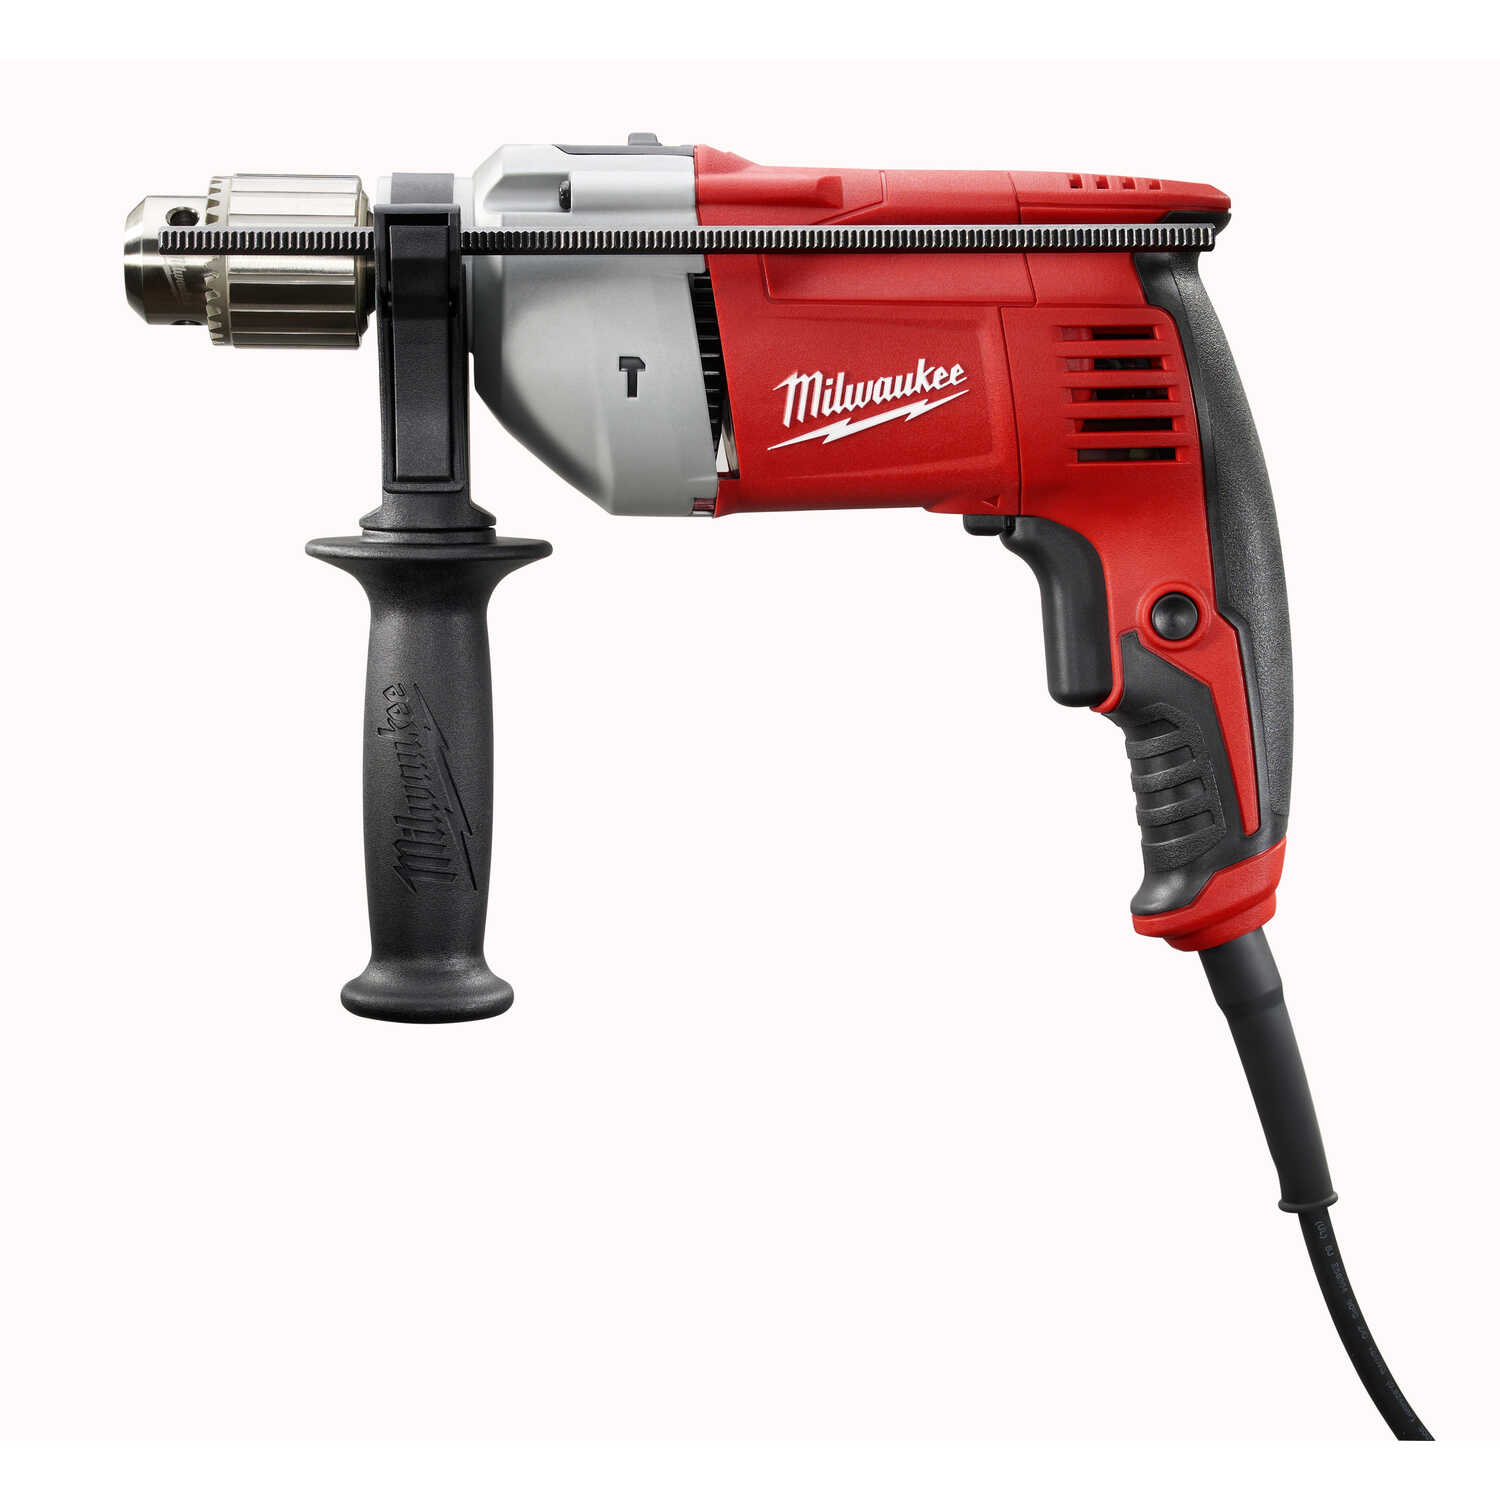 Milwaukee  1/2 in. Keyed  Corded Hammer Drill  Bare Tool  8 amps 2800 rpm